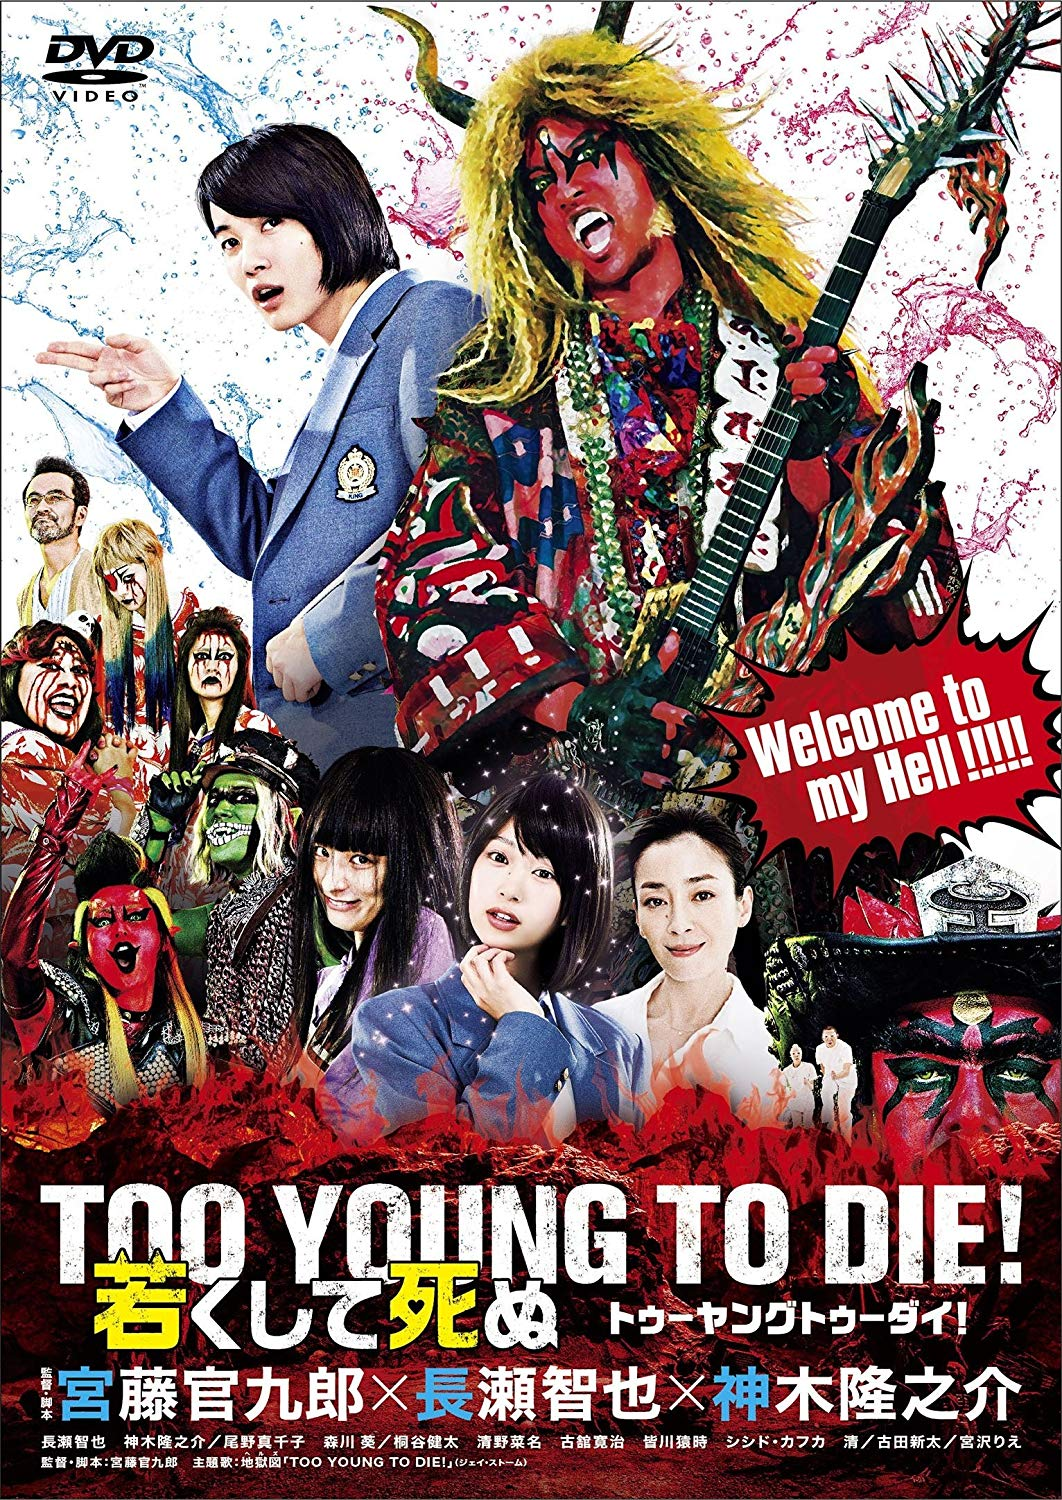 TOO YOUNG TO DIE! 若くして死ぬ画像